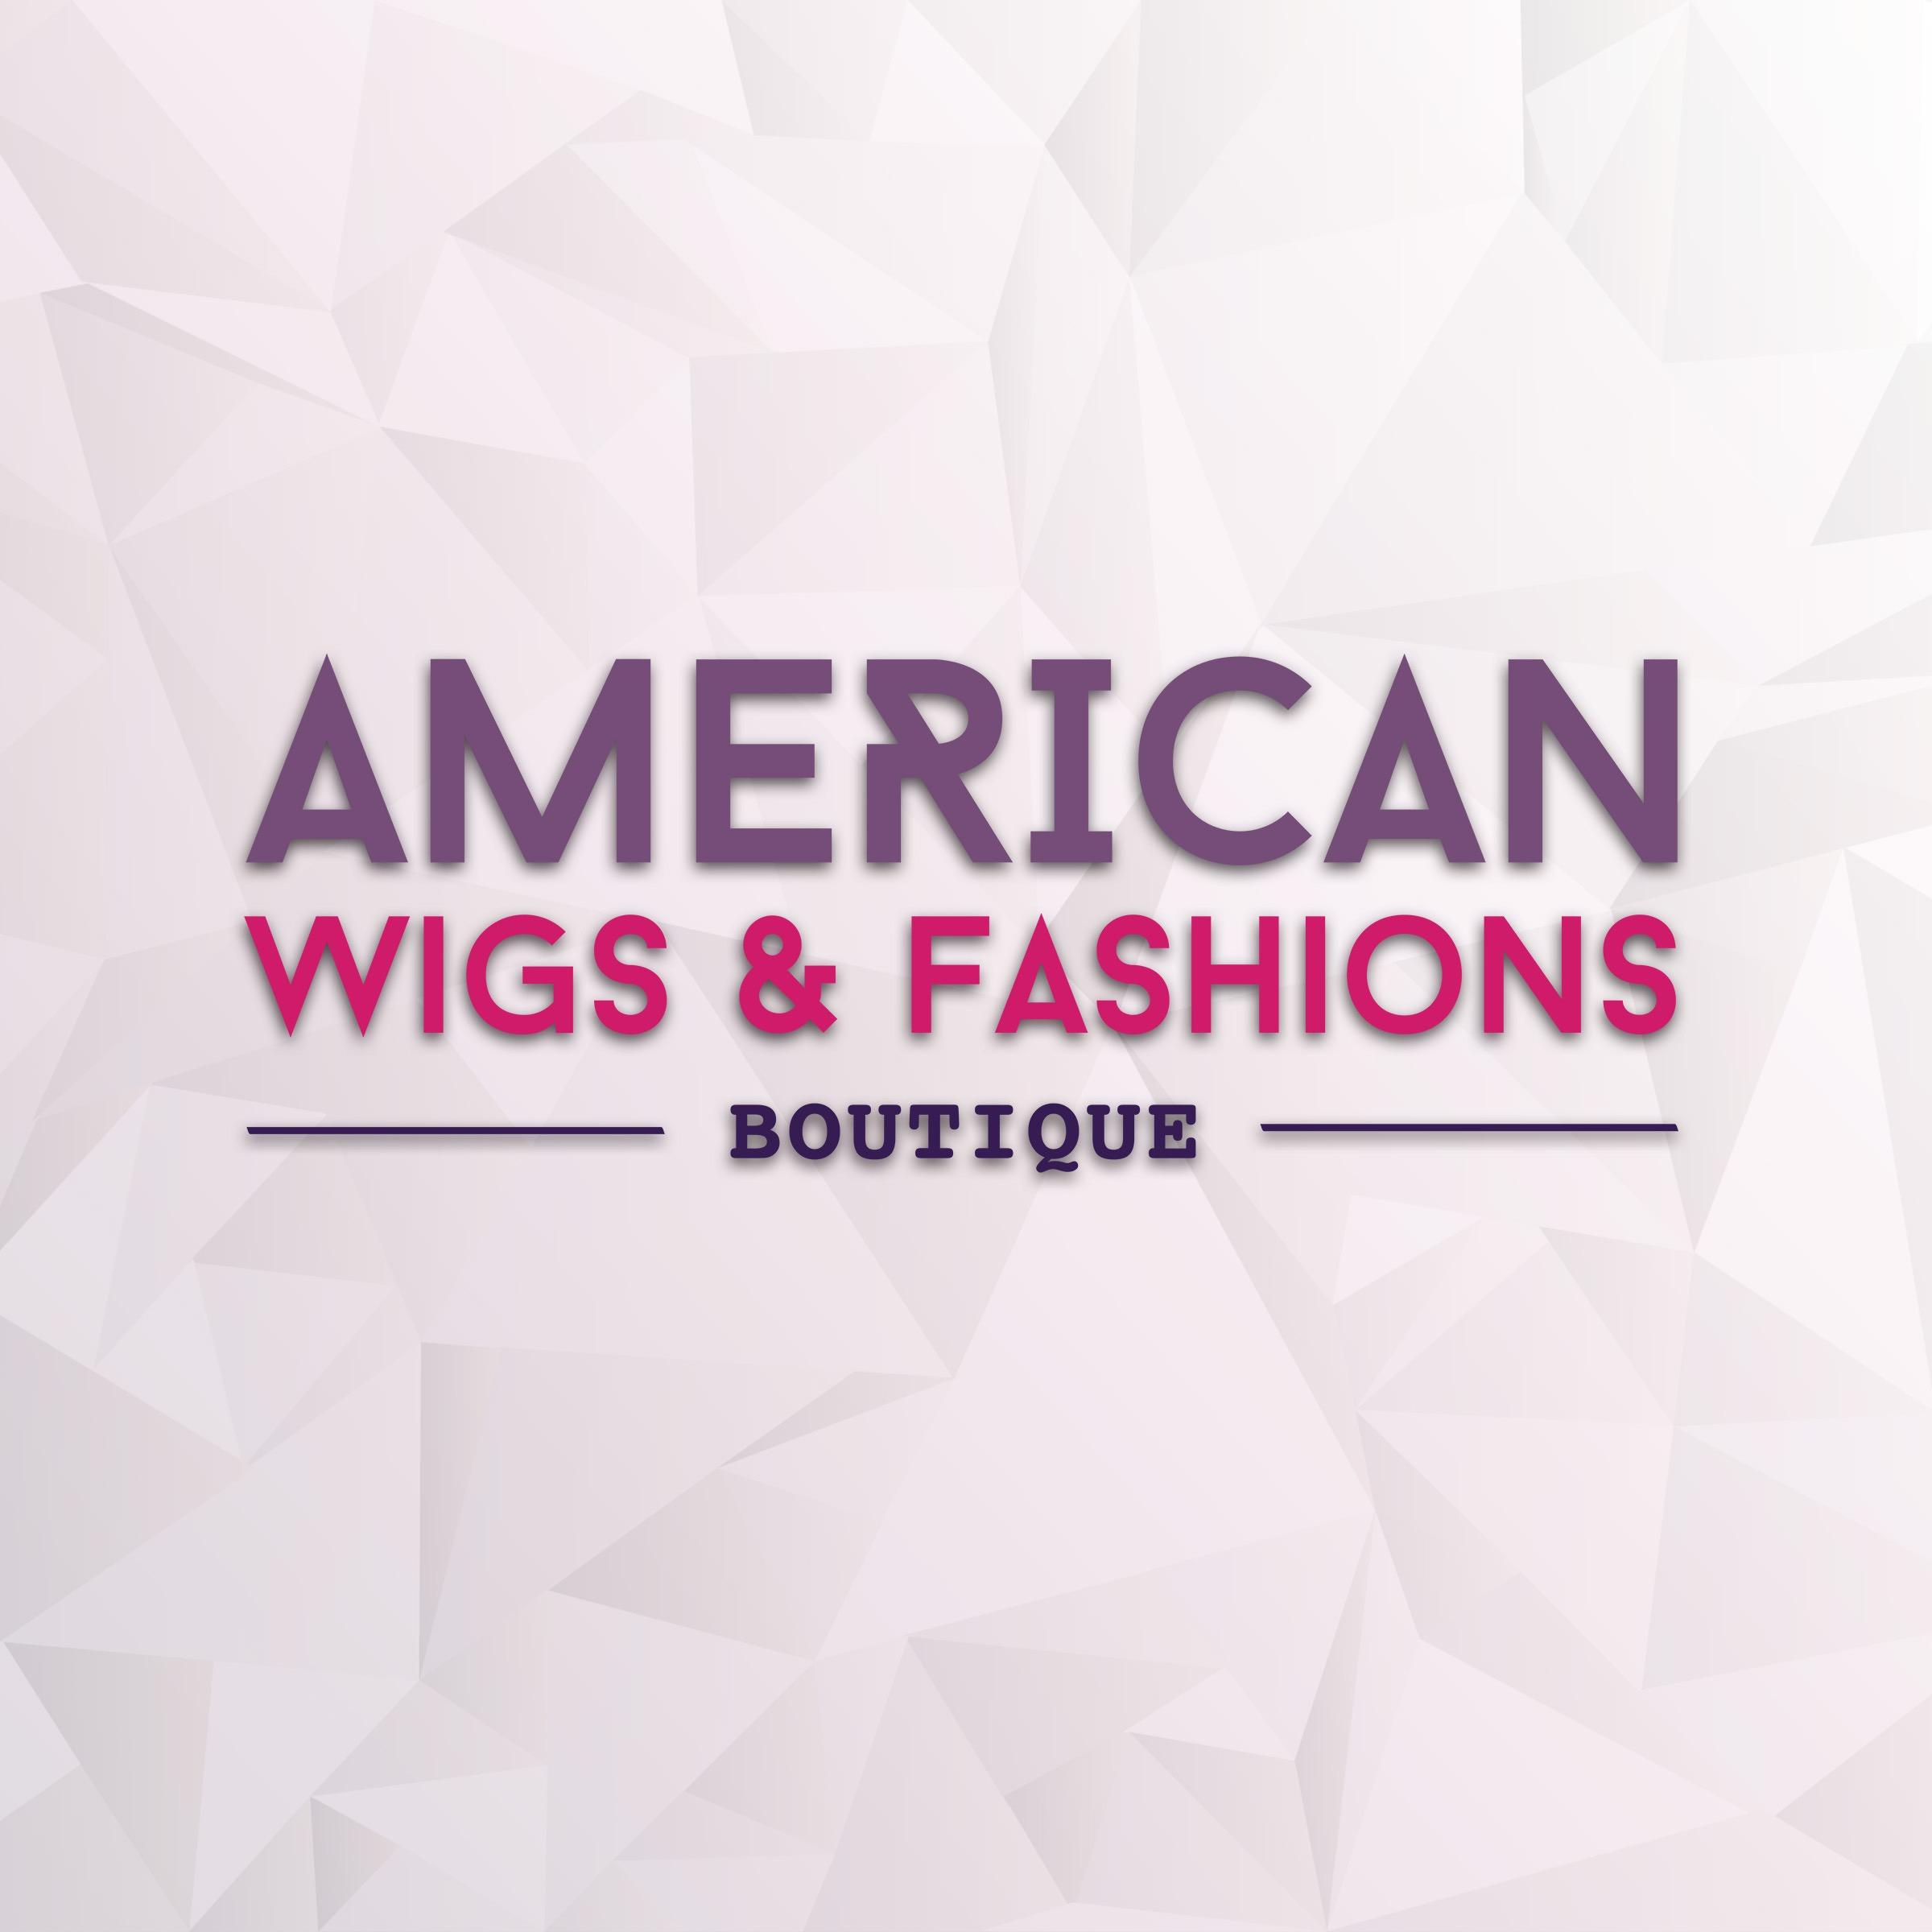 American Wigs and Fashion Boutique image 3